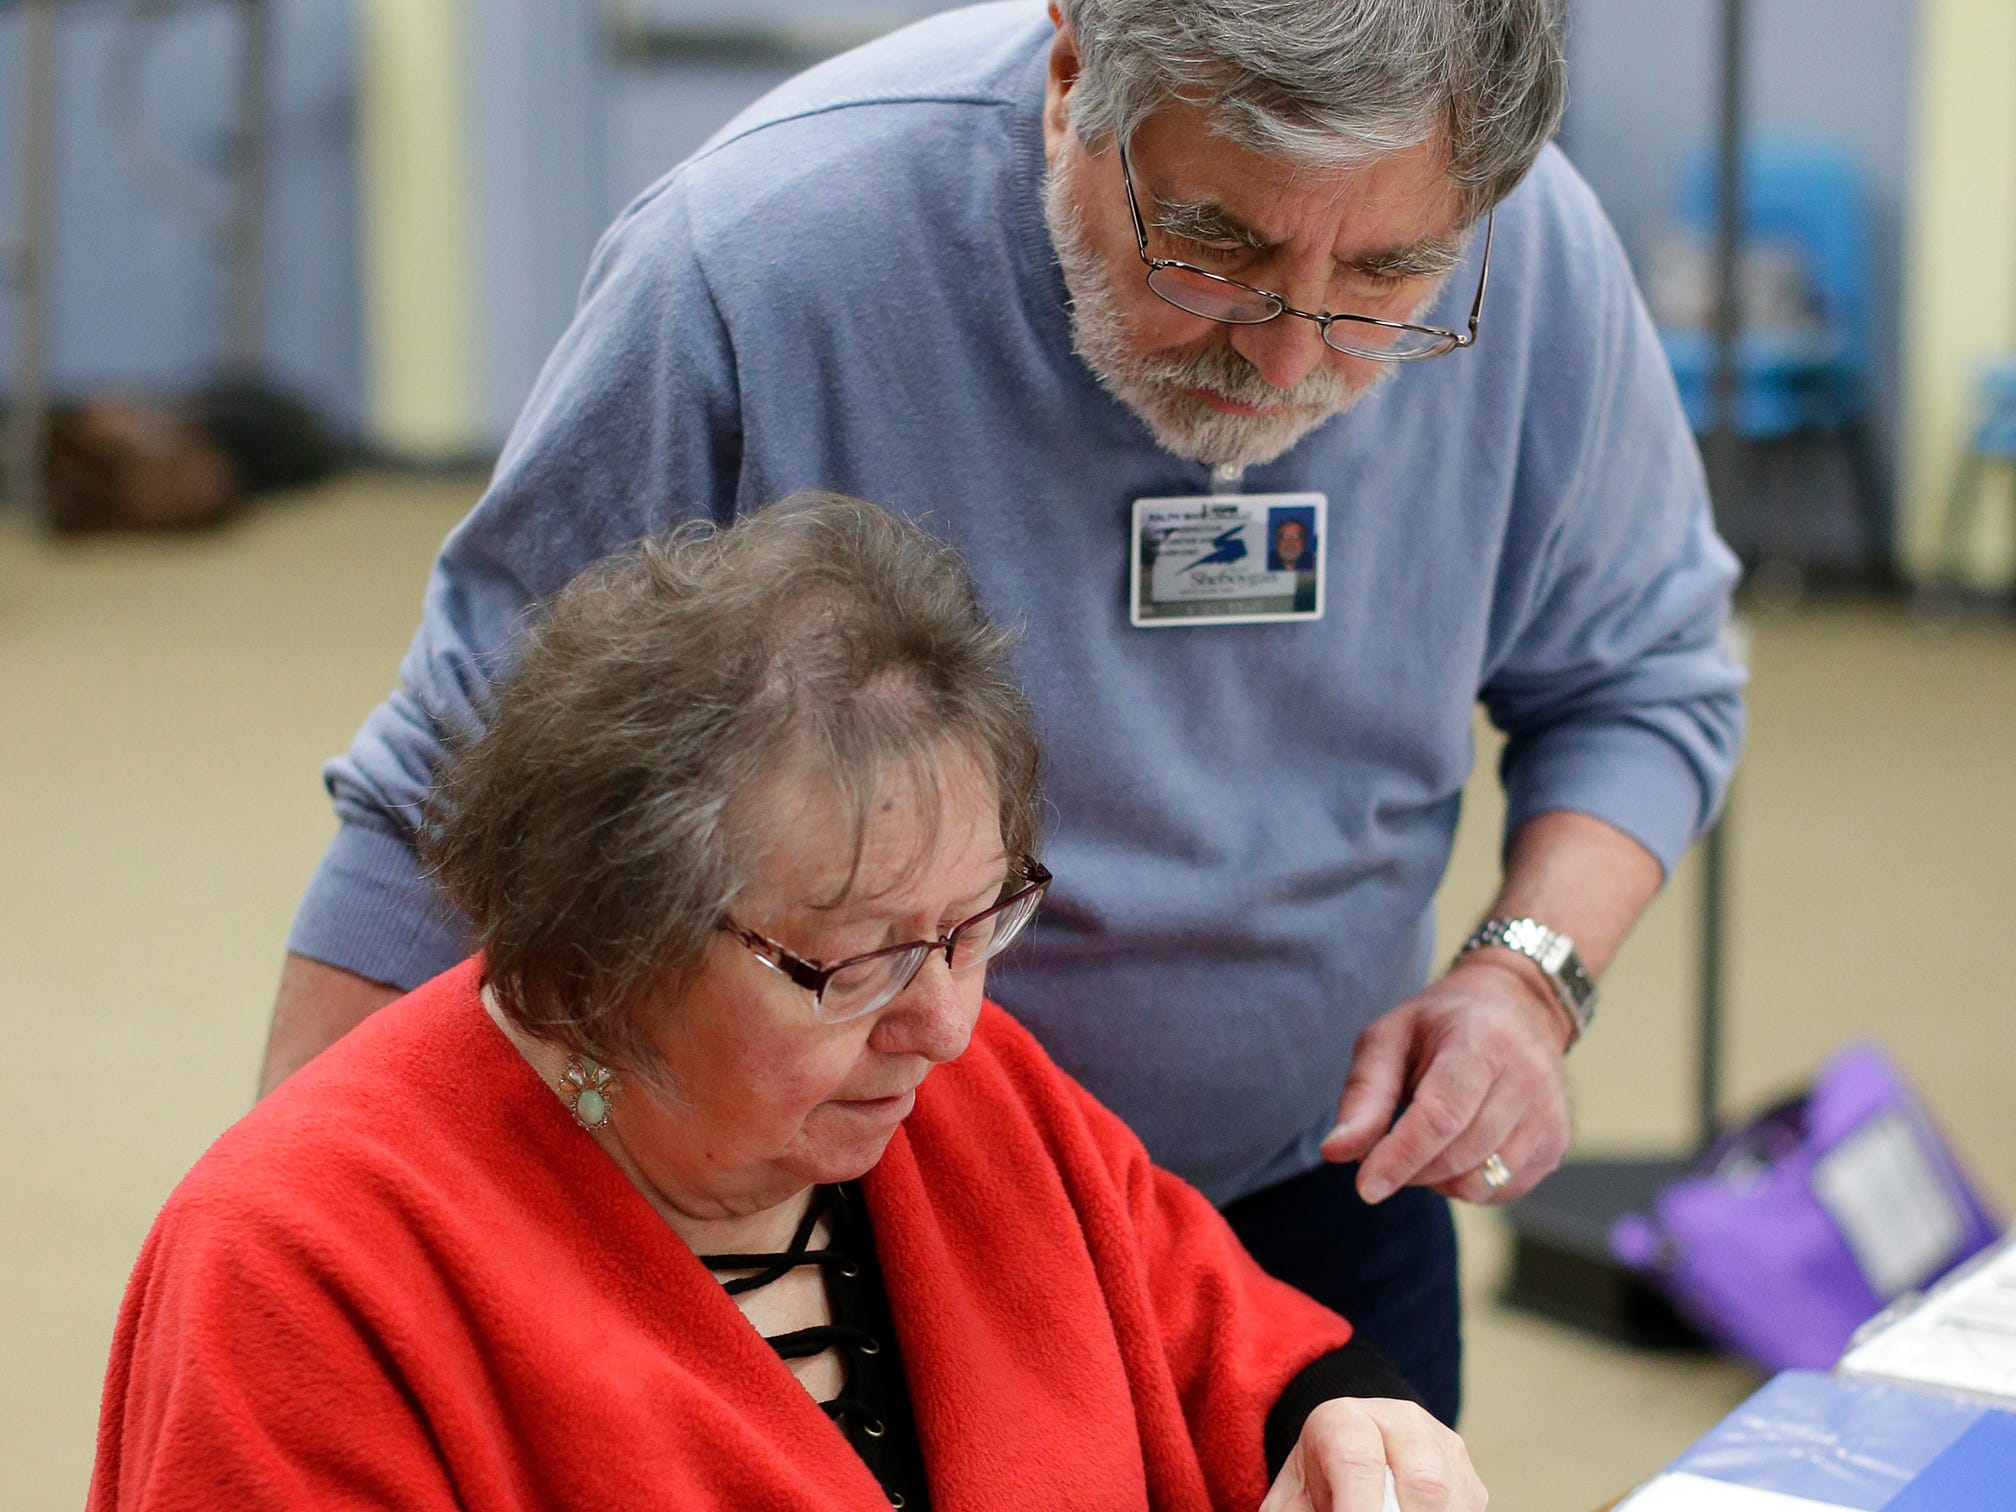 Poll worker Agnes Soerens looks over election paperwork with poll supervisor Ralph Maffongelli at the Senior Activity Center poll, Tuesday, April 2, 2019, in Sheboygan, Wis.